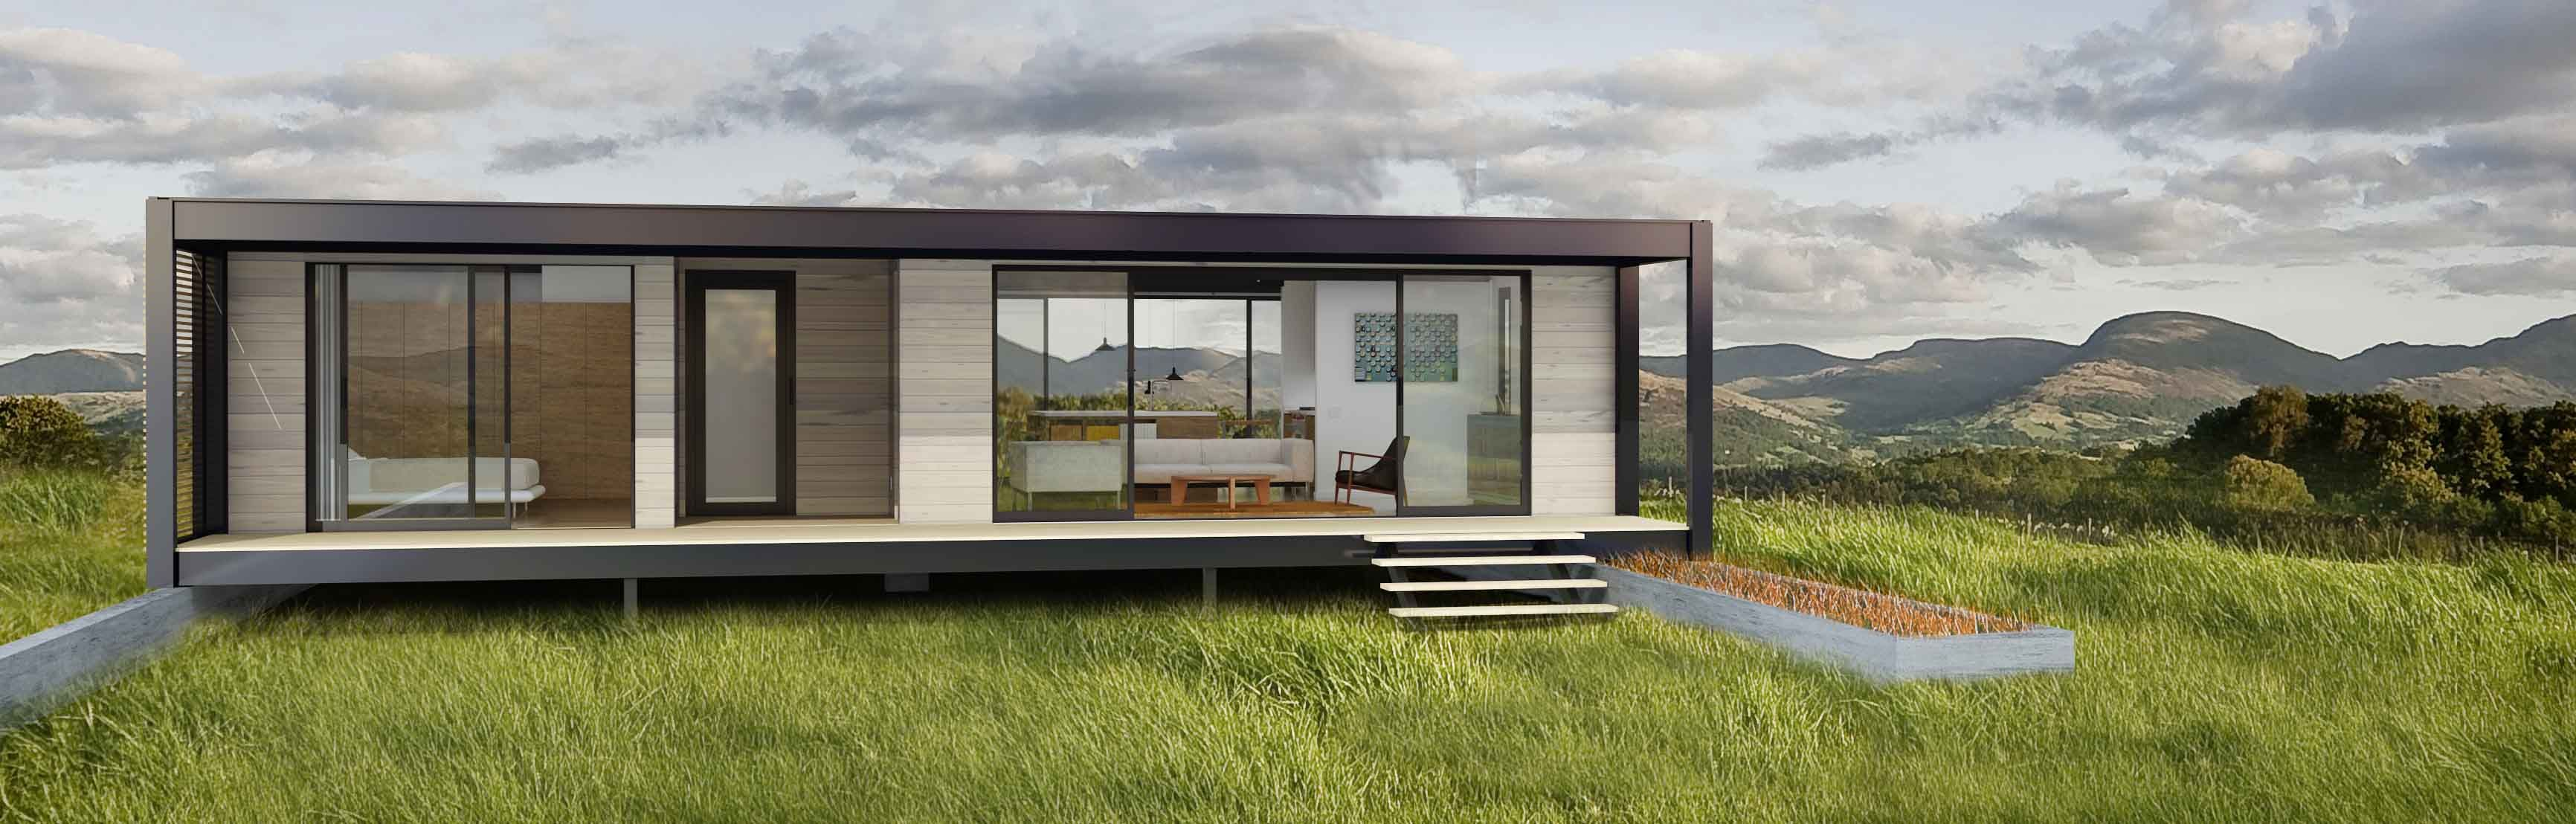 The Excellent Prefab Homes Affordable Awesome Ideas For You